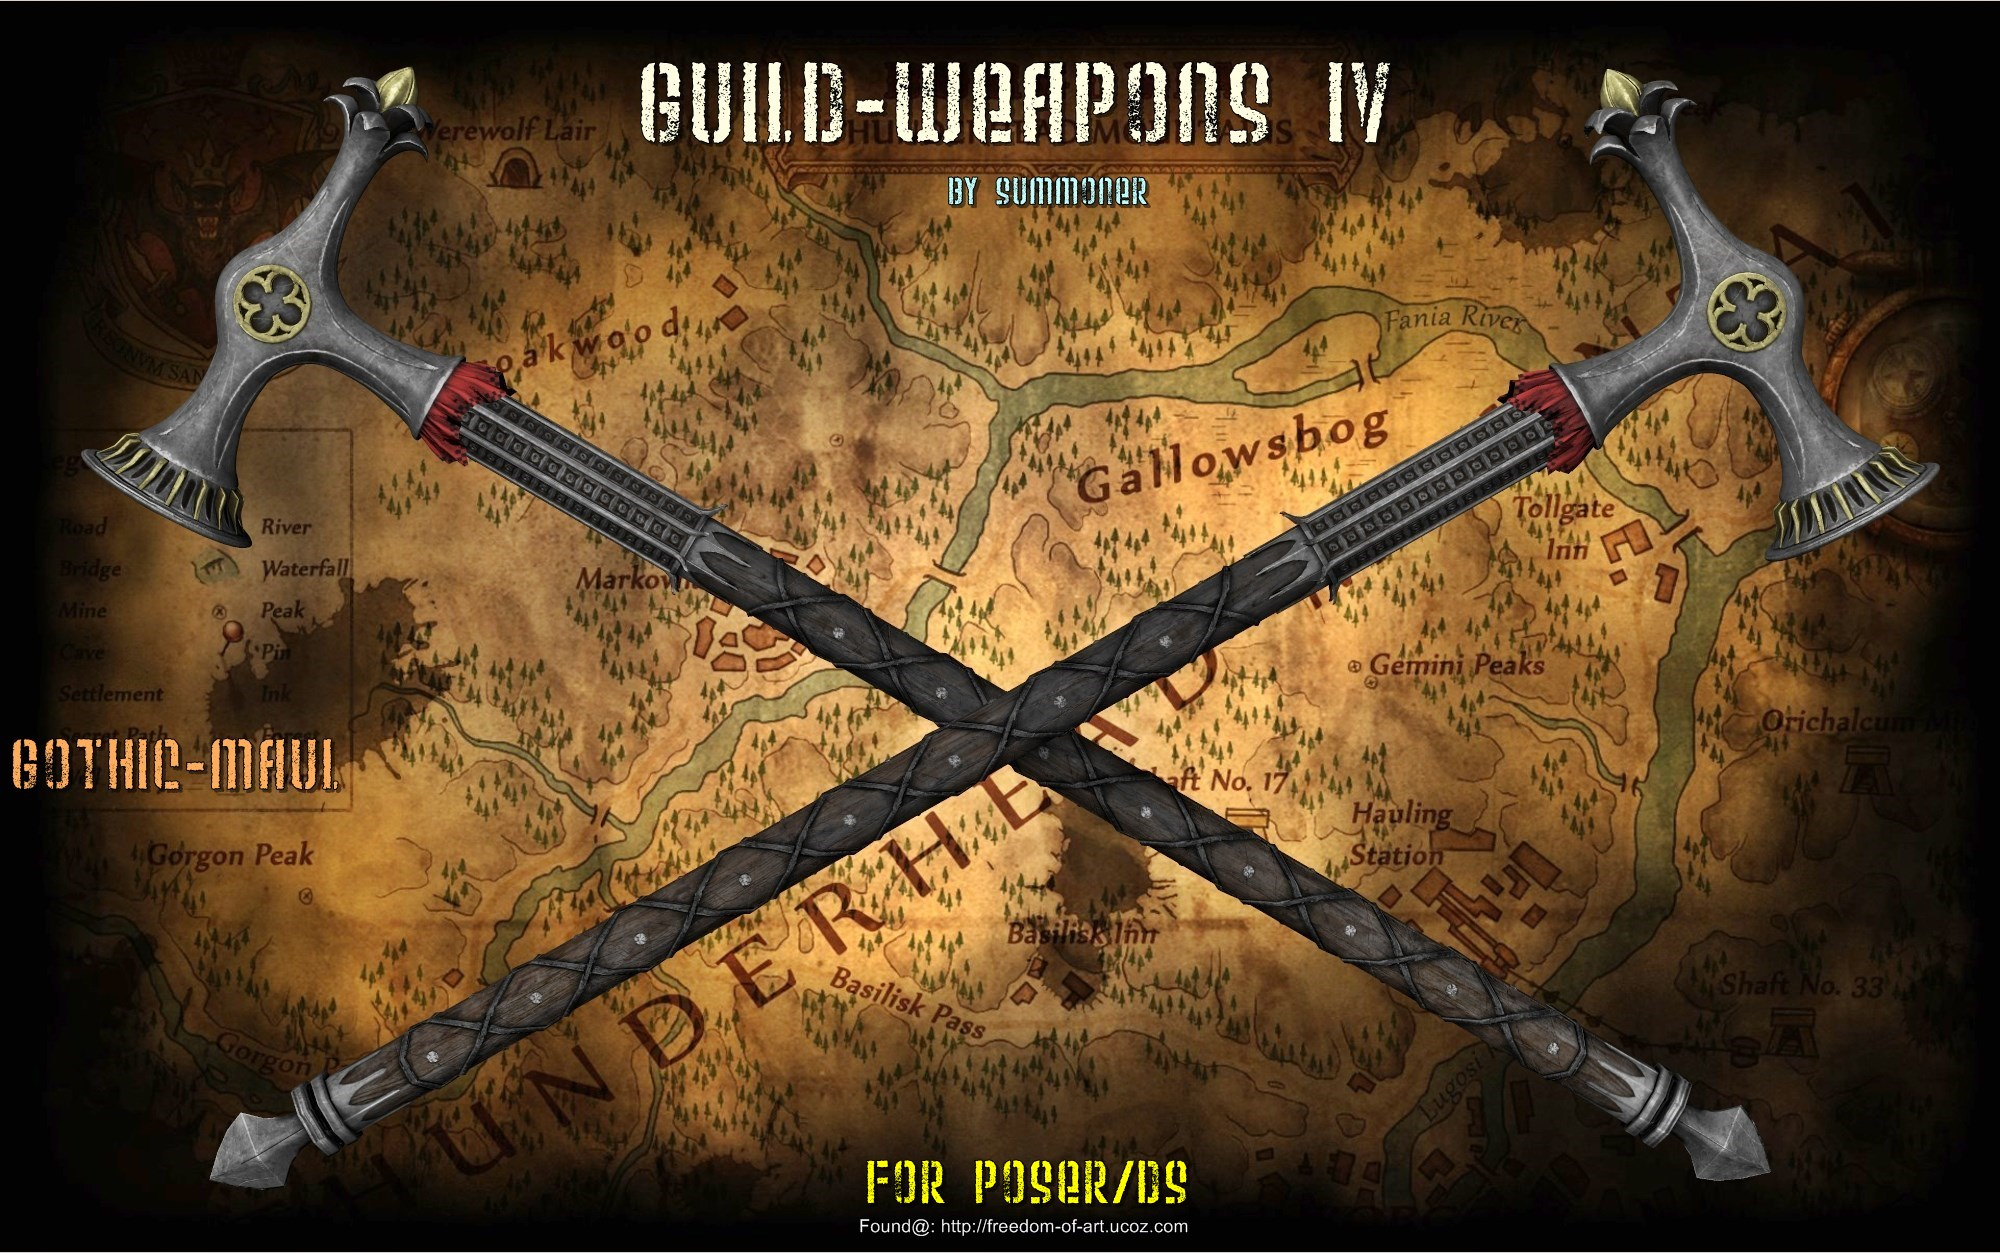 Summoner's Guild Weapons IV *Exclusive*